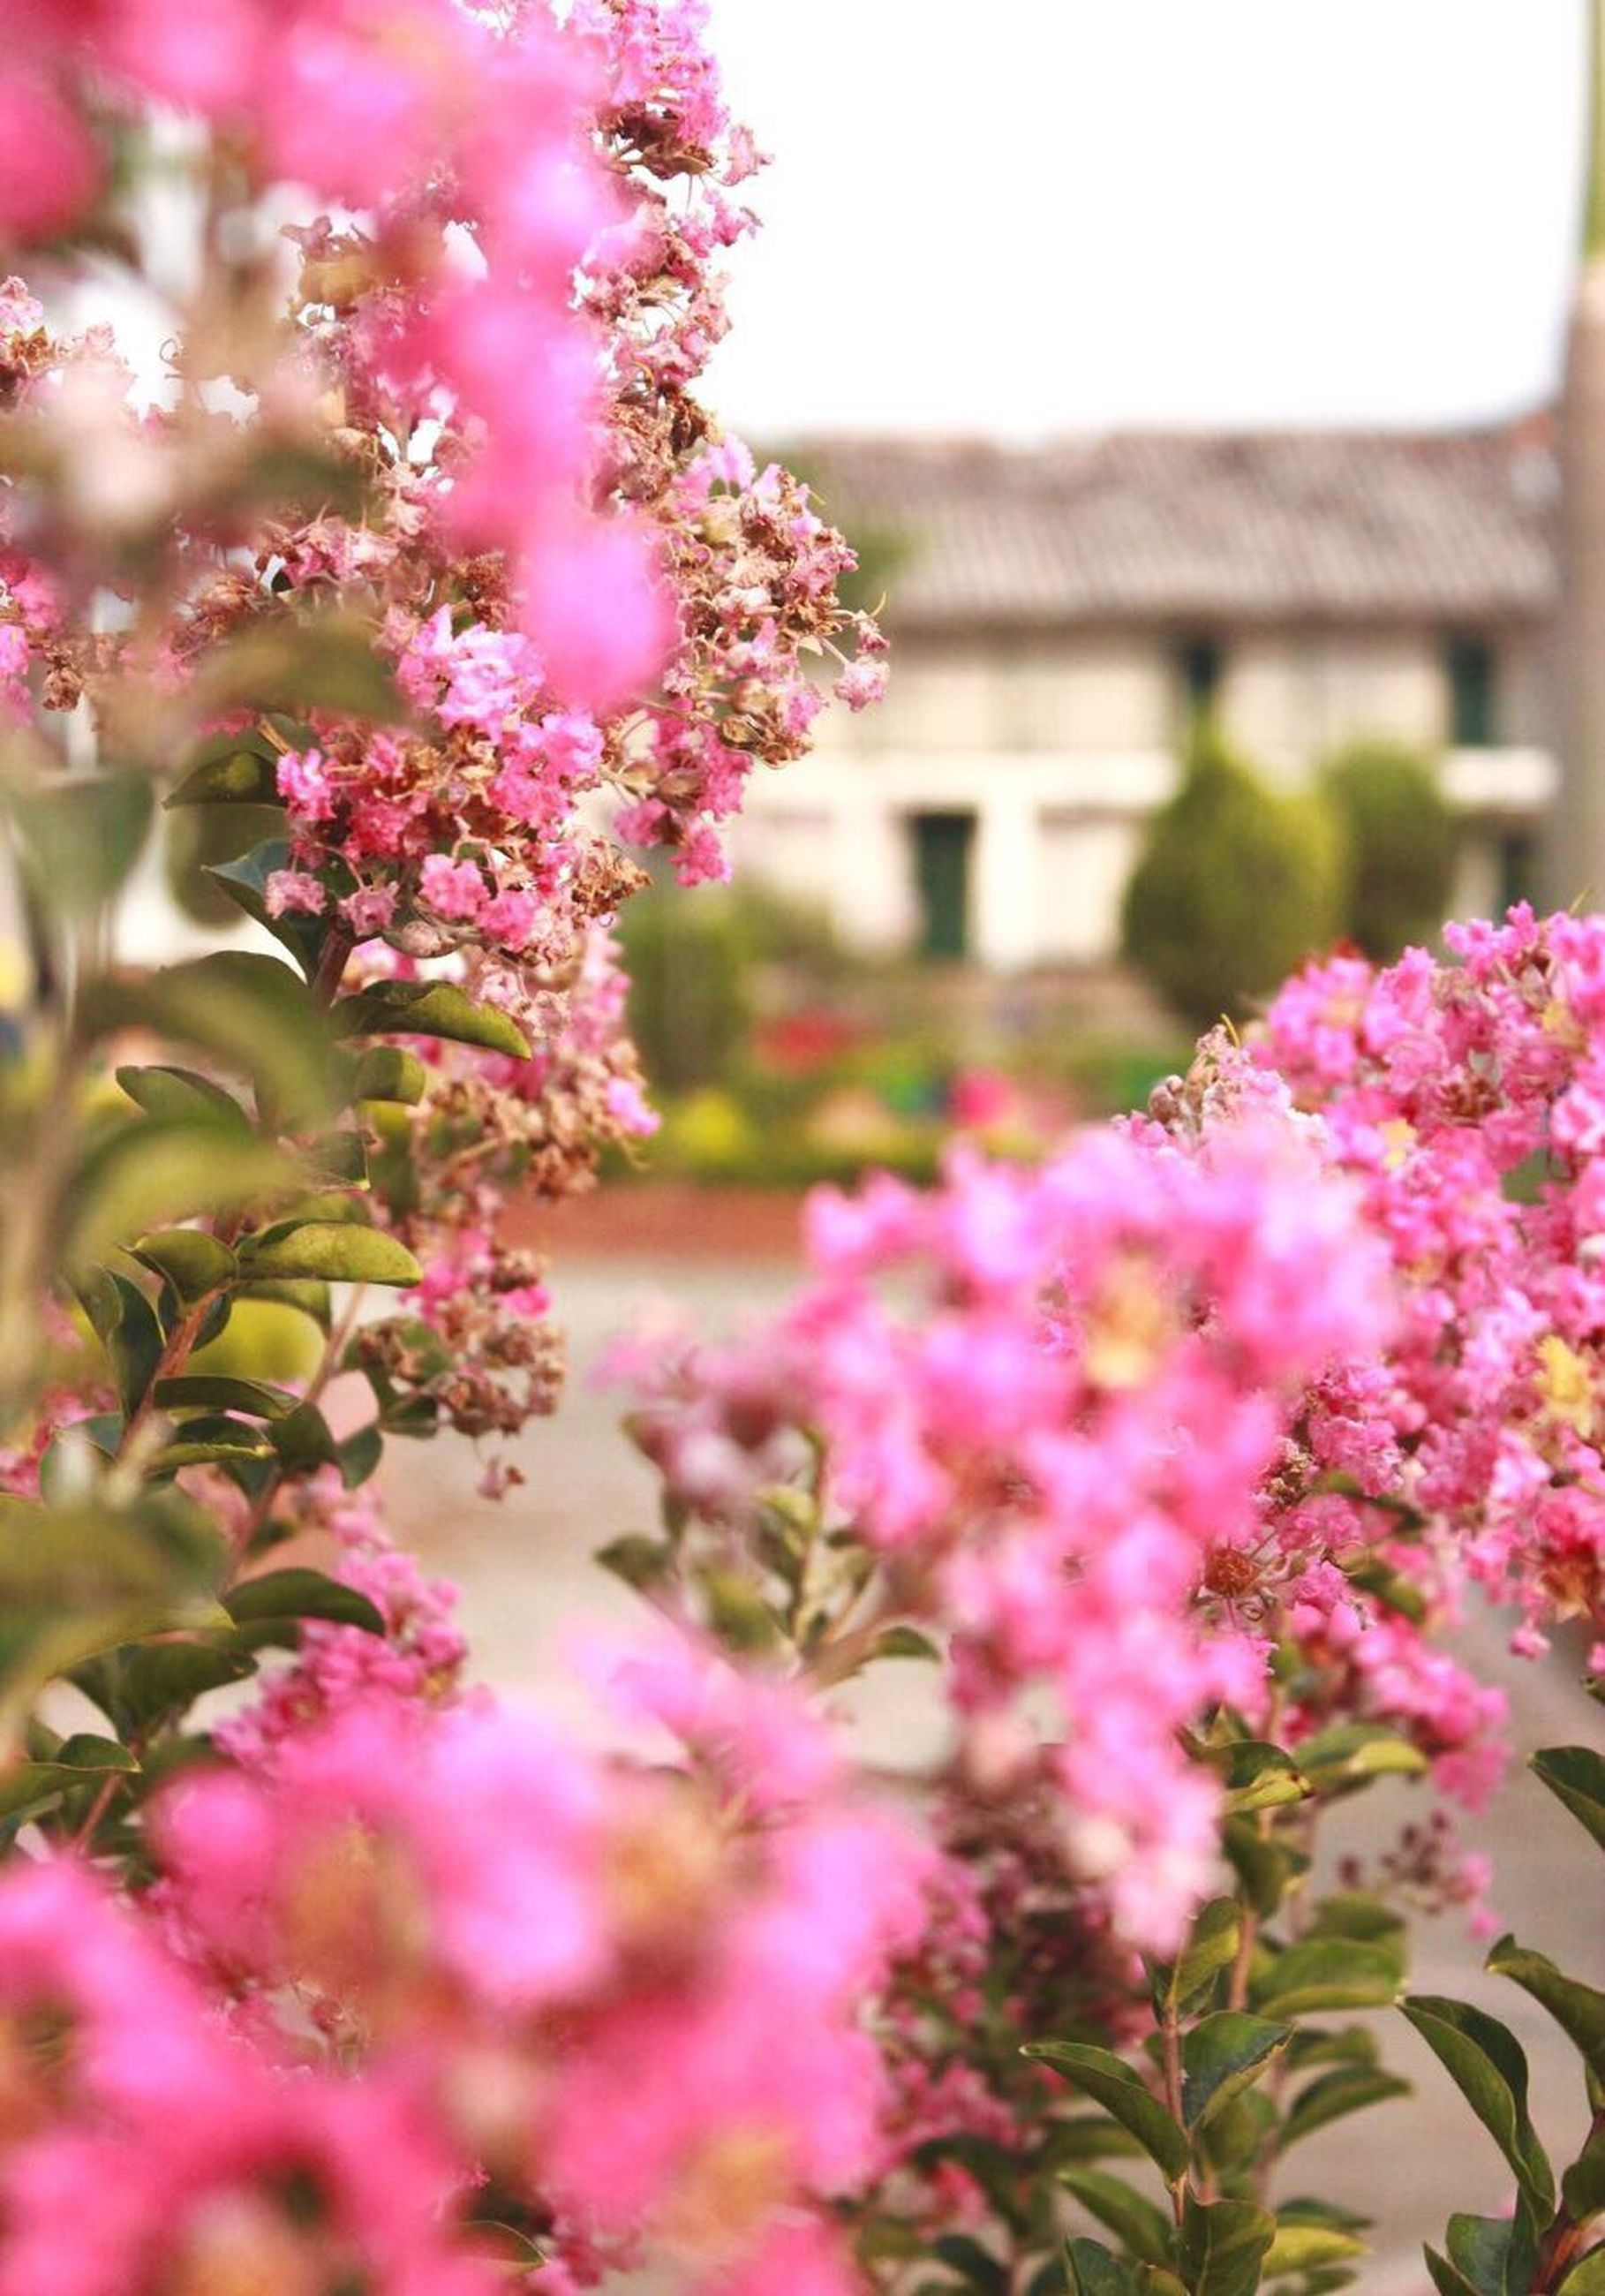 flower, nature, fragility, growth, plant, beauty in nature, pink color, freshness, no people, outdoors, building exterior, close-up, flower head, blooming, day, built structure, lilac